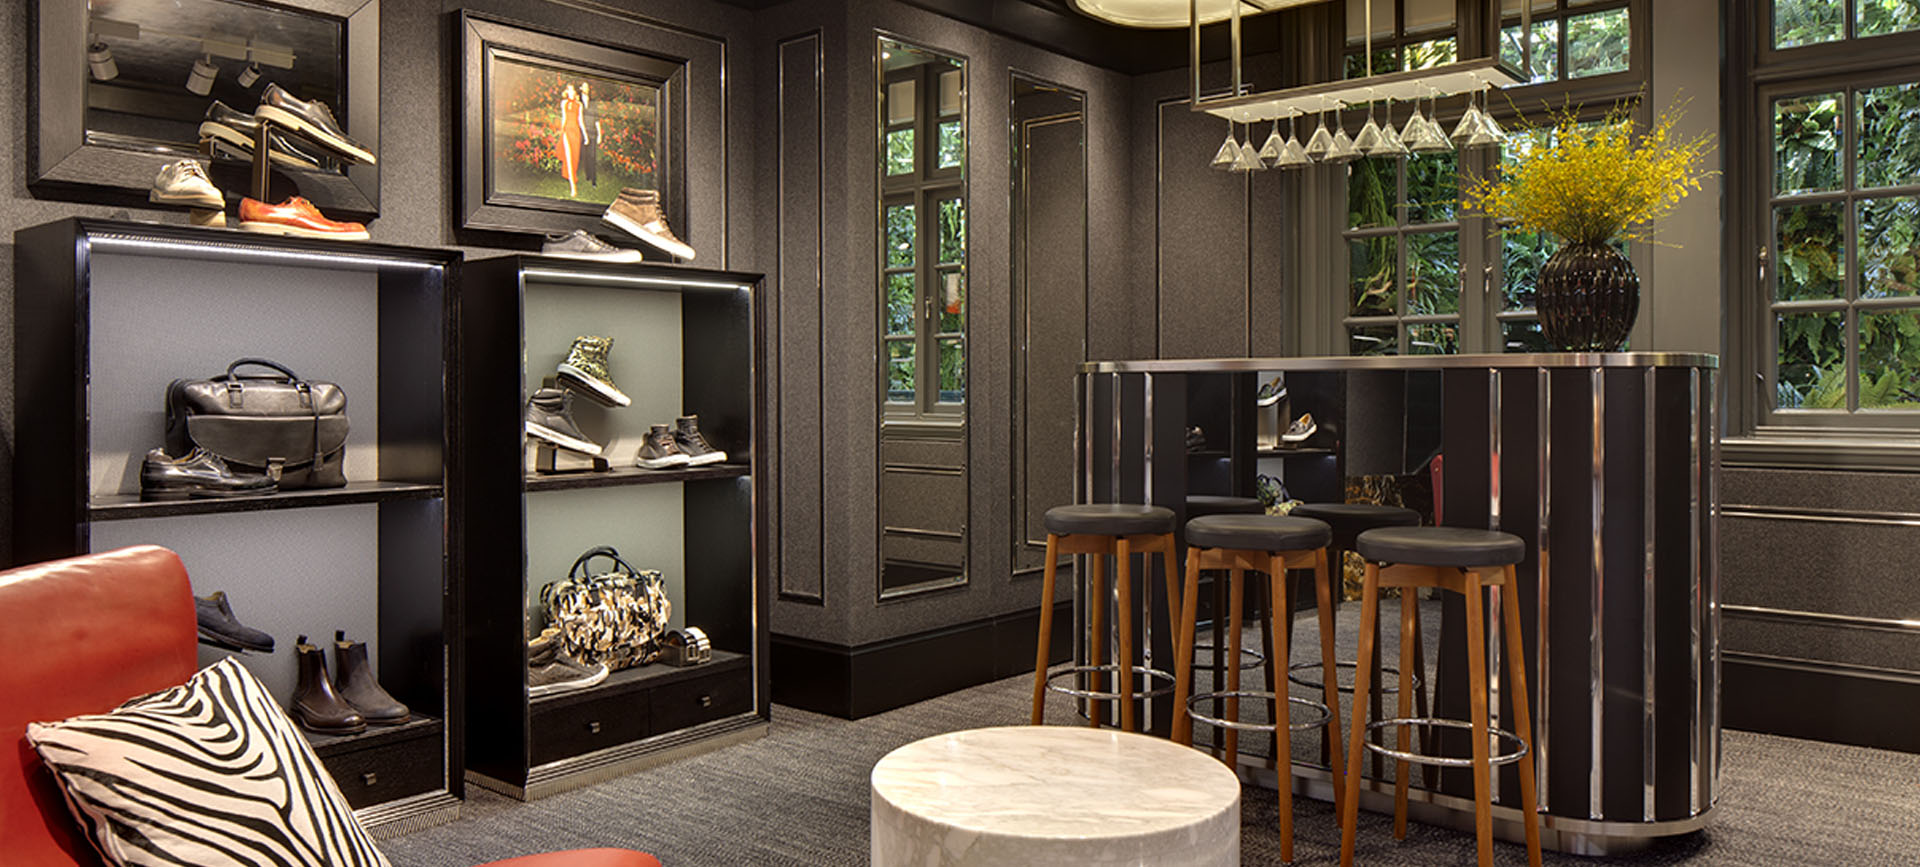 Jimmy Choo releases new Mayfair store concept